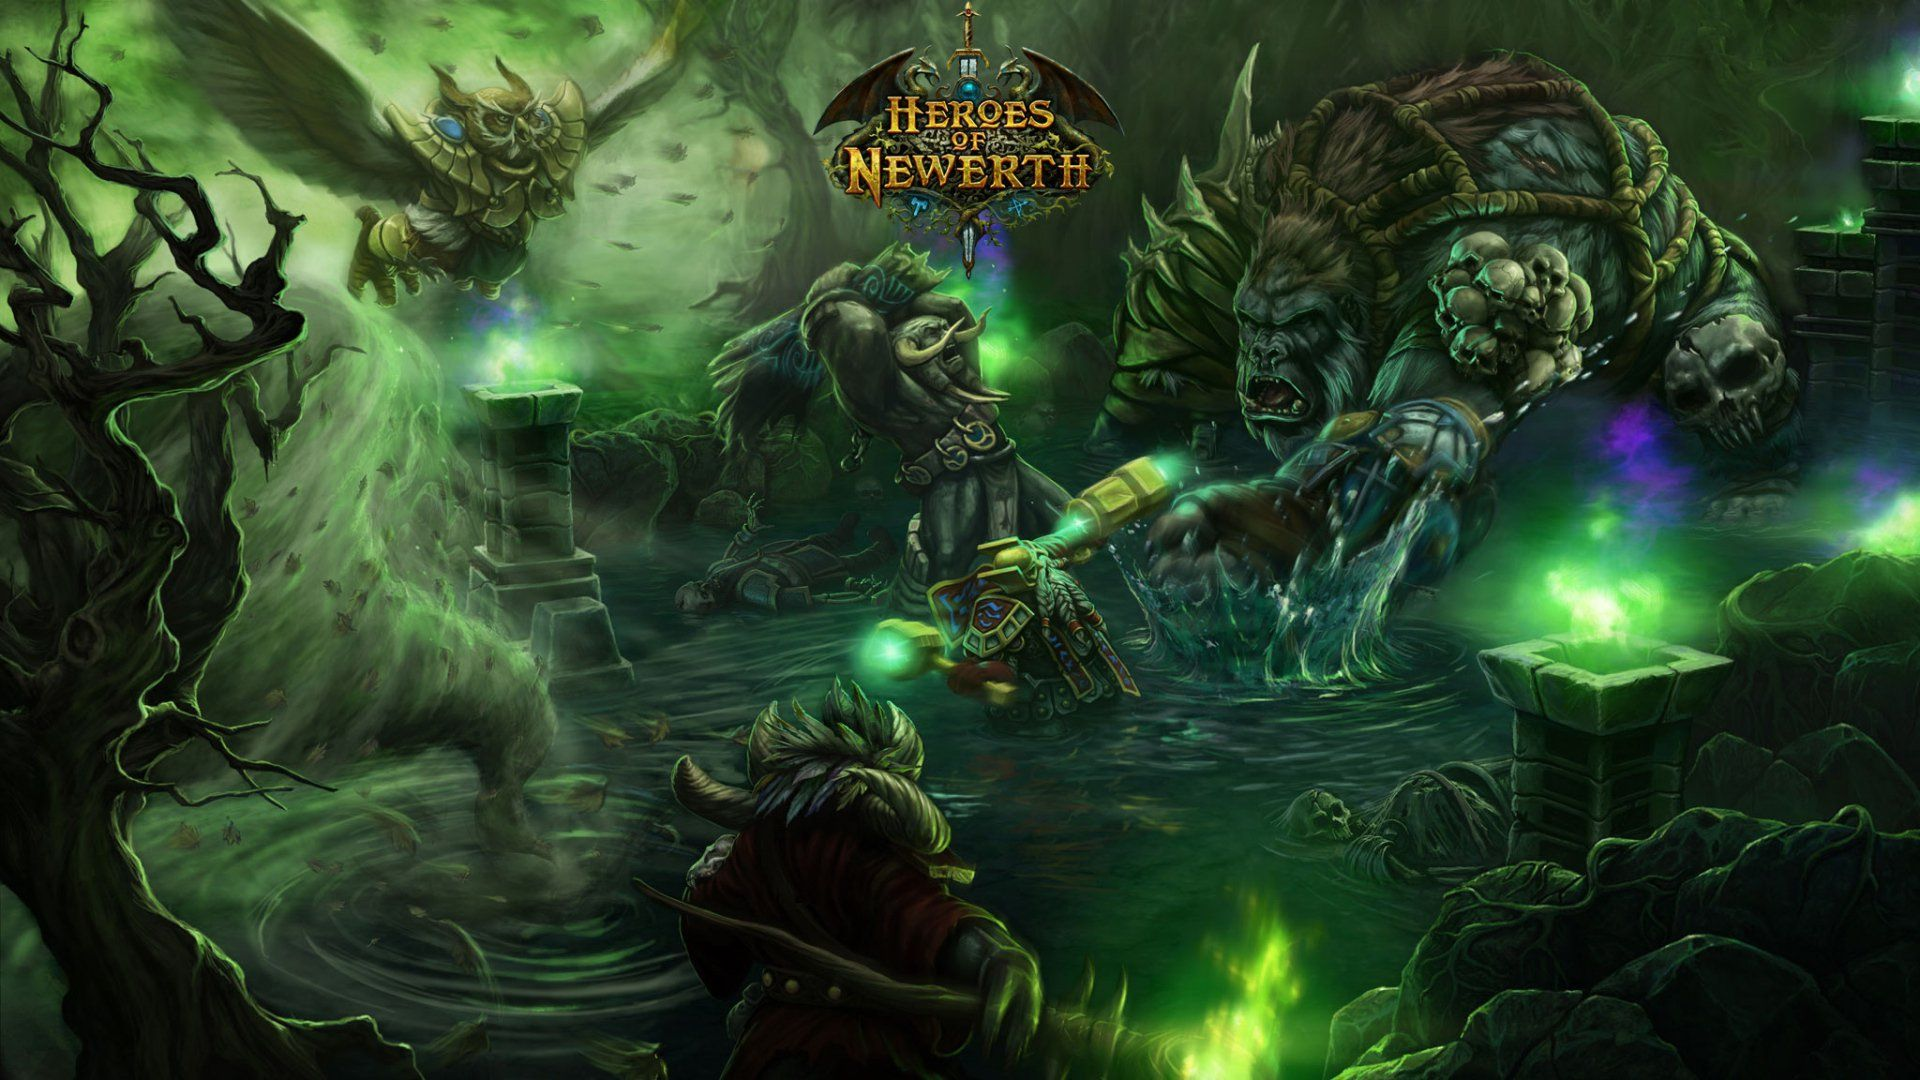 Runescape Guide On World Of Warcraft Wallpaper Warcraft Heroes